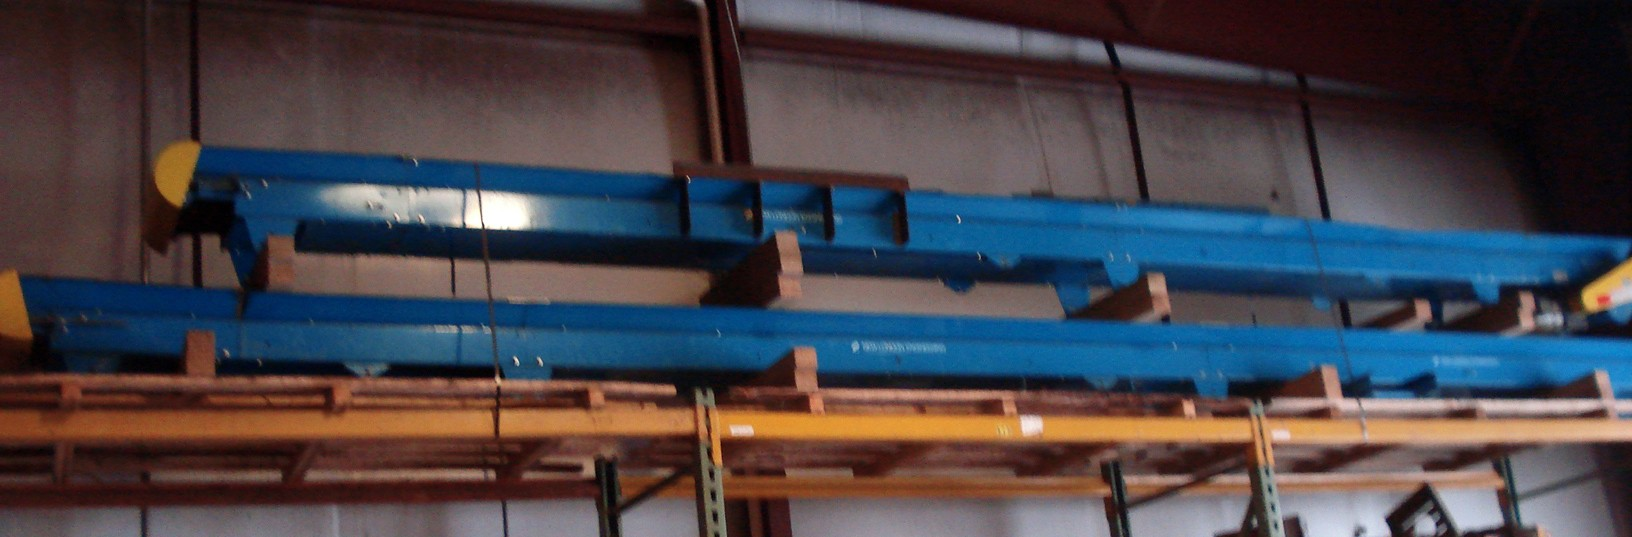 Used Return Conveyor - Unknown Brand/Model